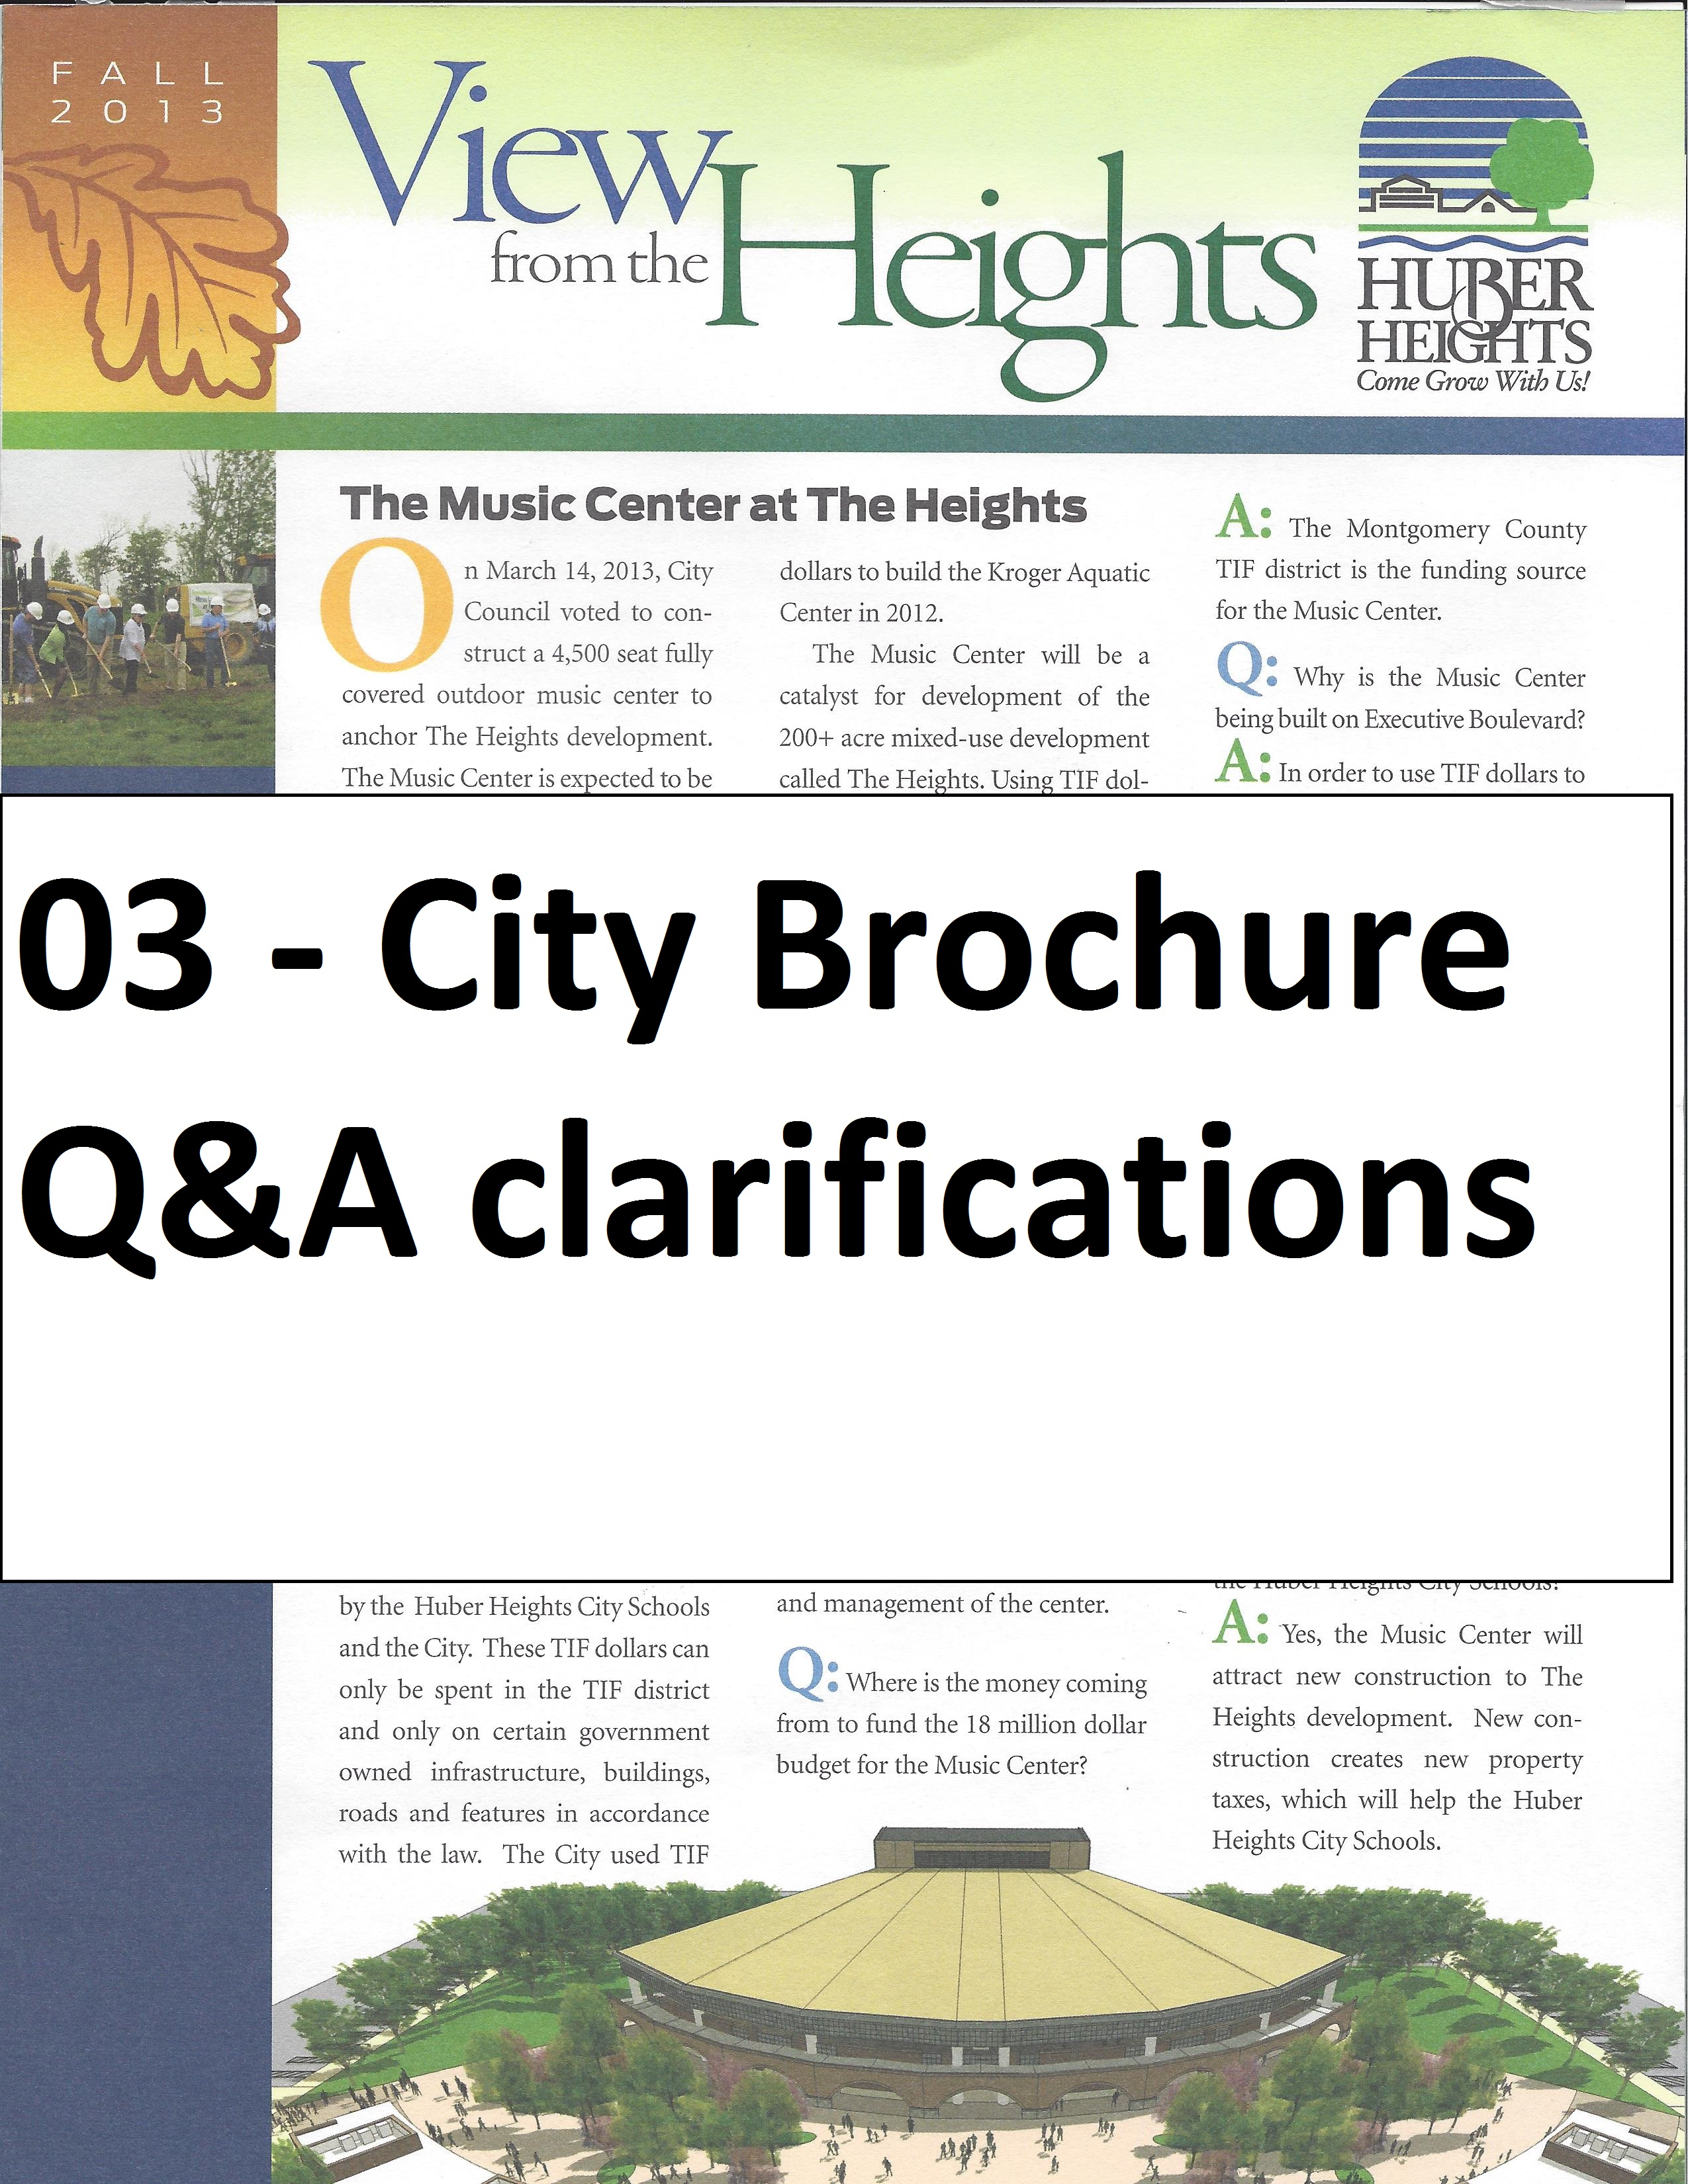 City Flier and Clarification to Q & A